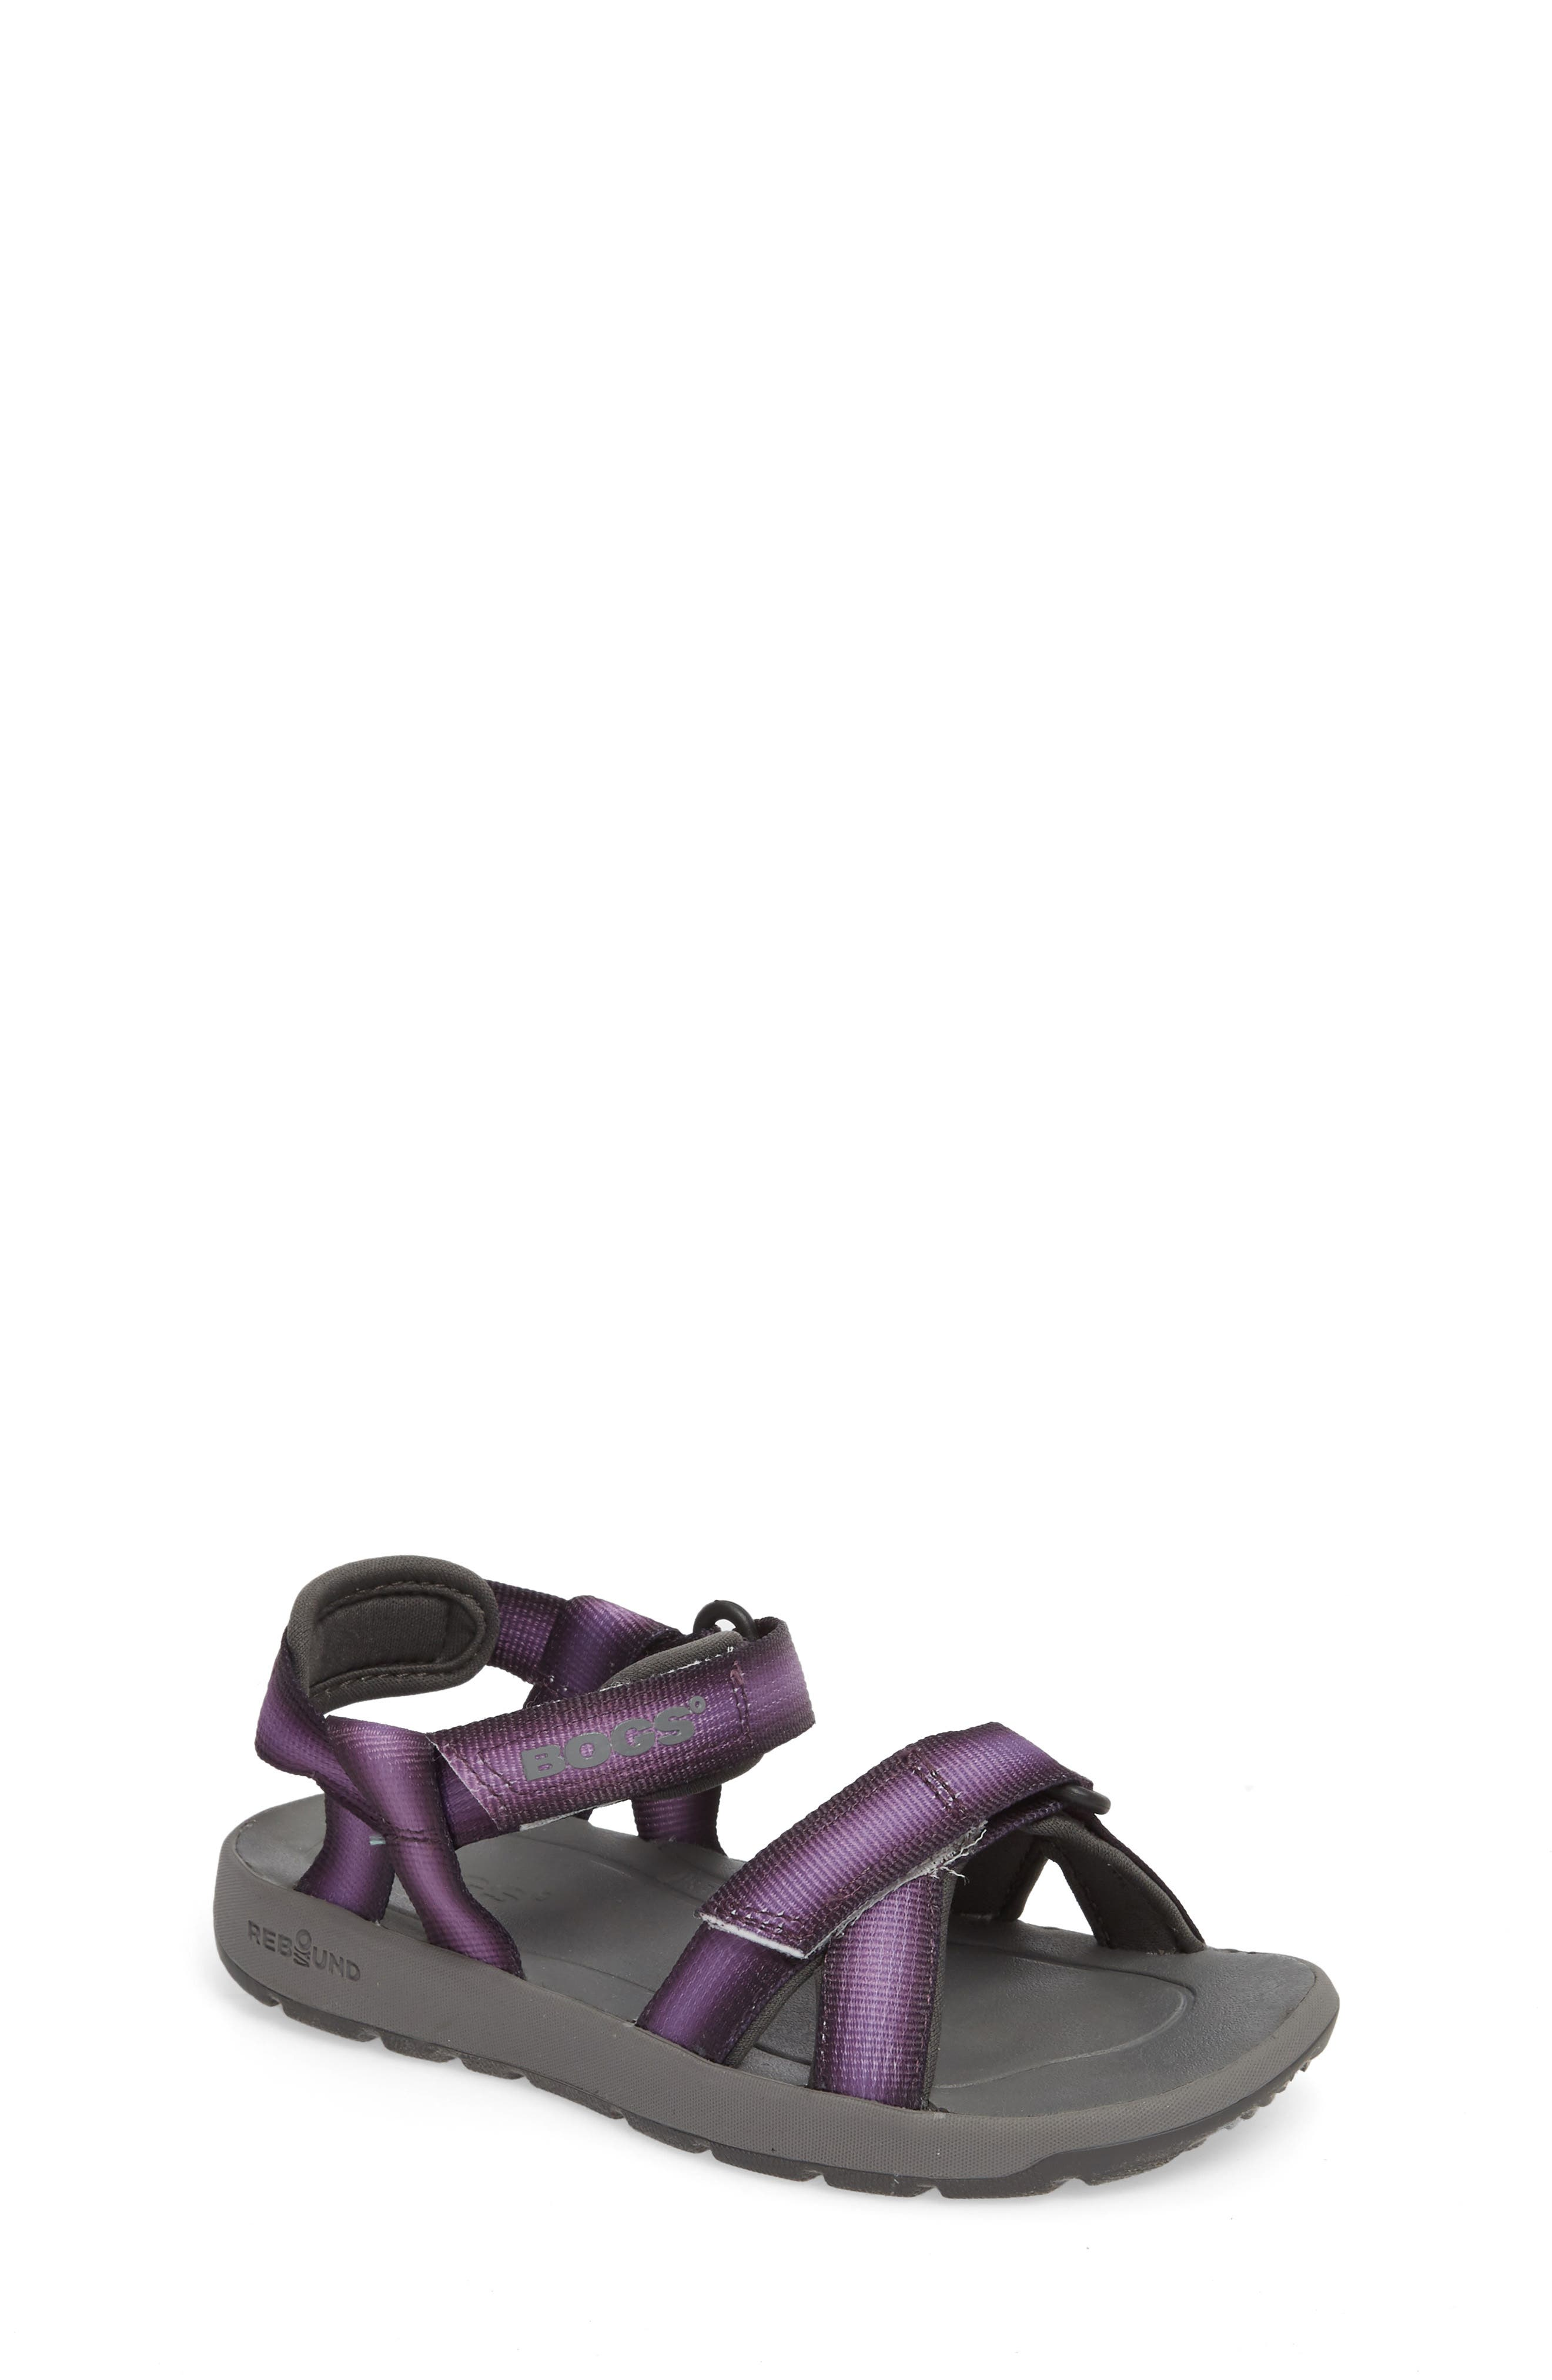 Bogs Rio Sunrise Stripe Sandal (Toddler, Little Kid & Big Kid)